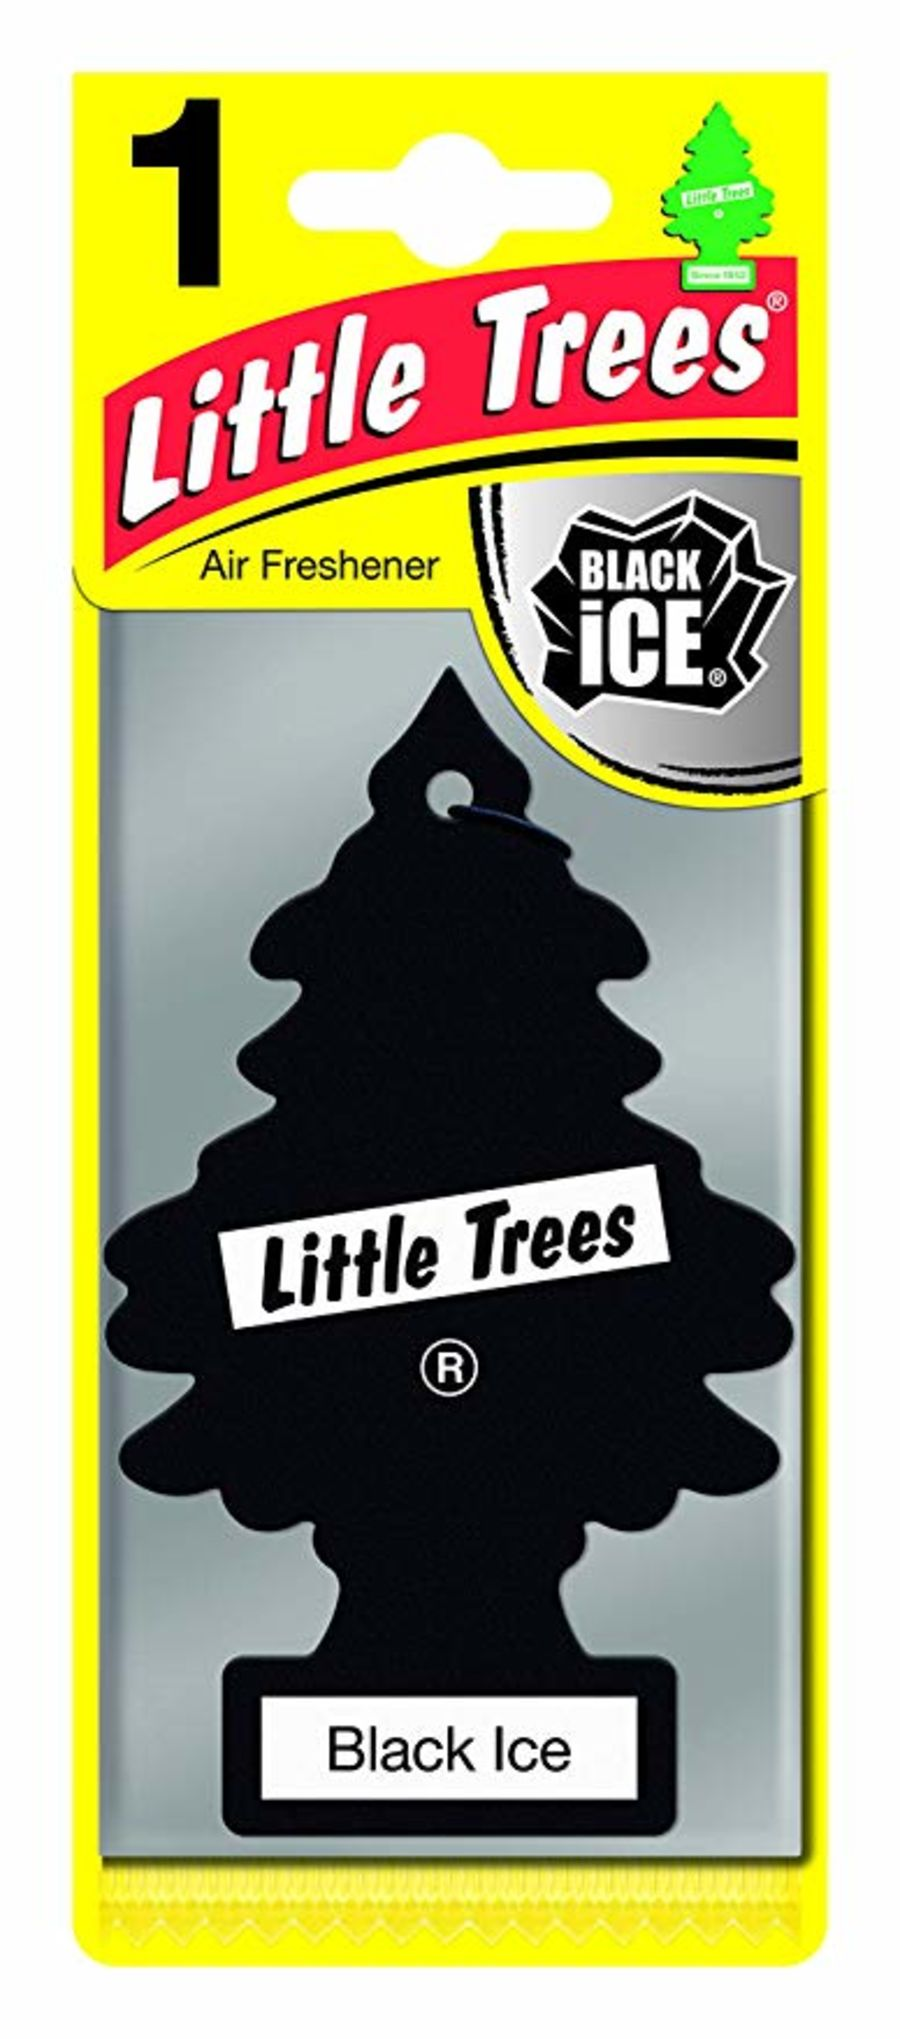 Air Freshener Black Ice